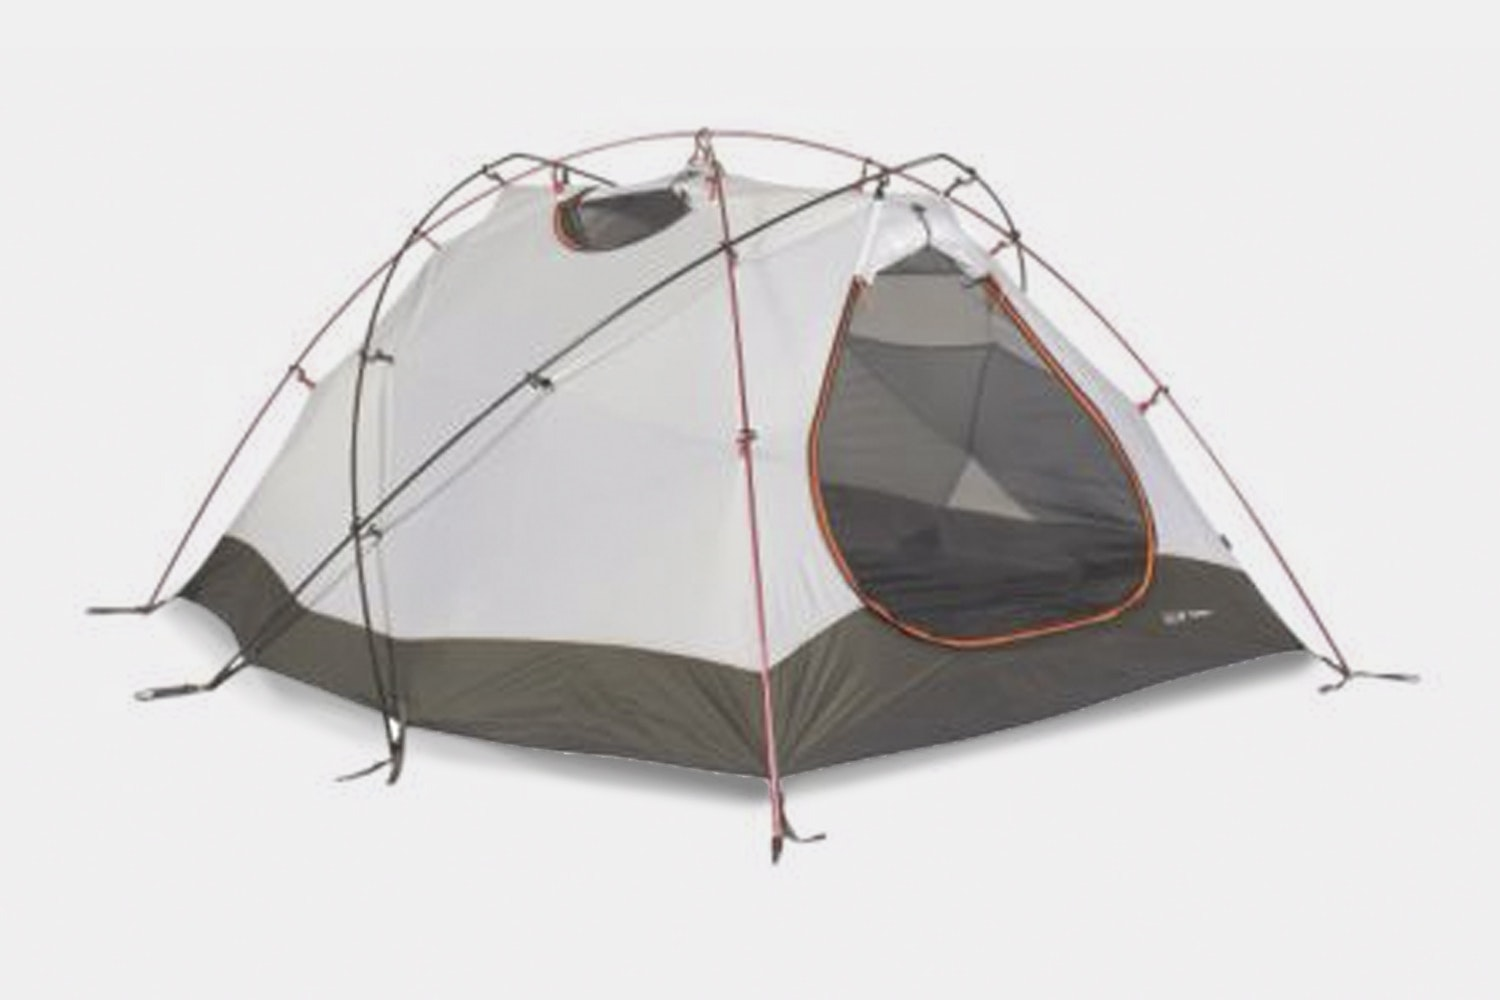 Mountain Hardwear Trango 4-Season Tents & Mountain Hardwear Trango 4-Season Tents | Price u0026 Reviews | Massdrop